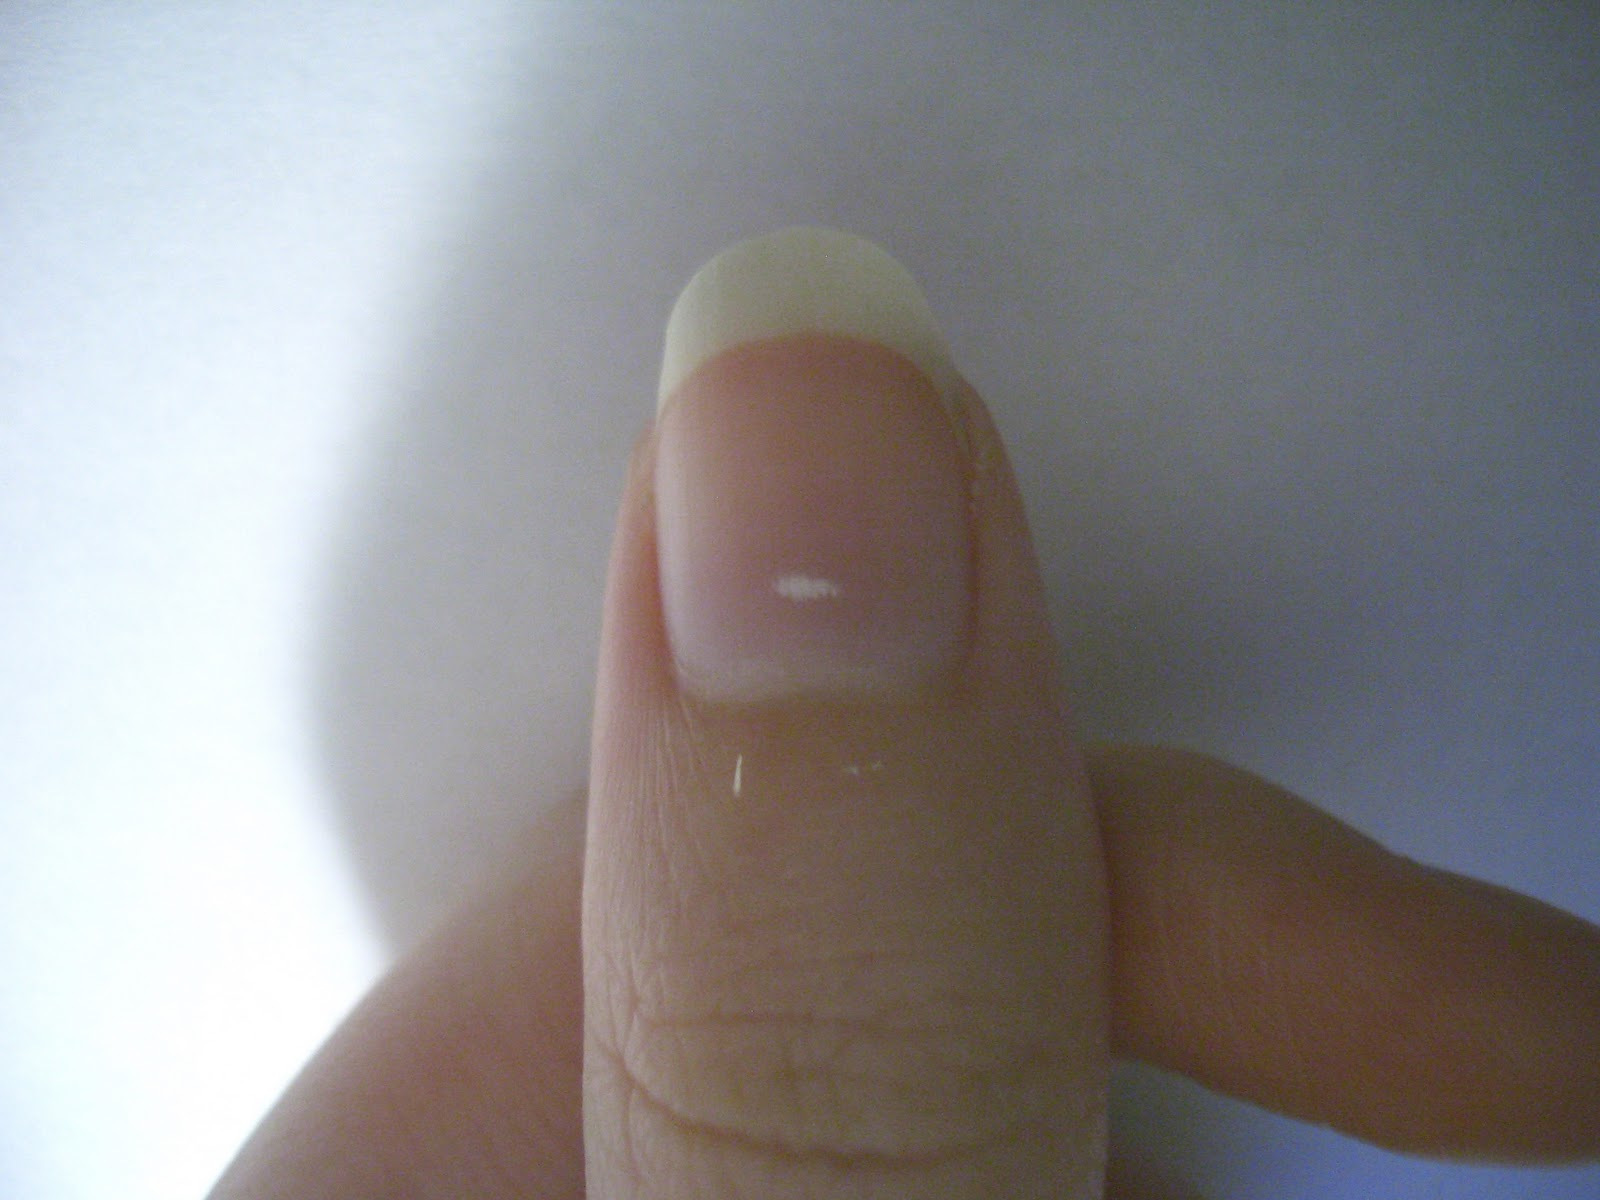 How to avoid white spot on the nail